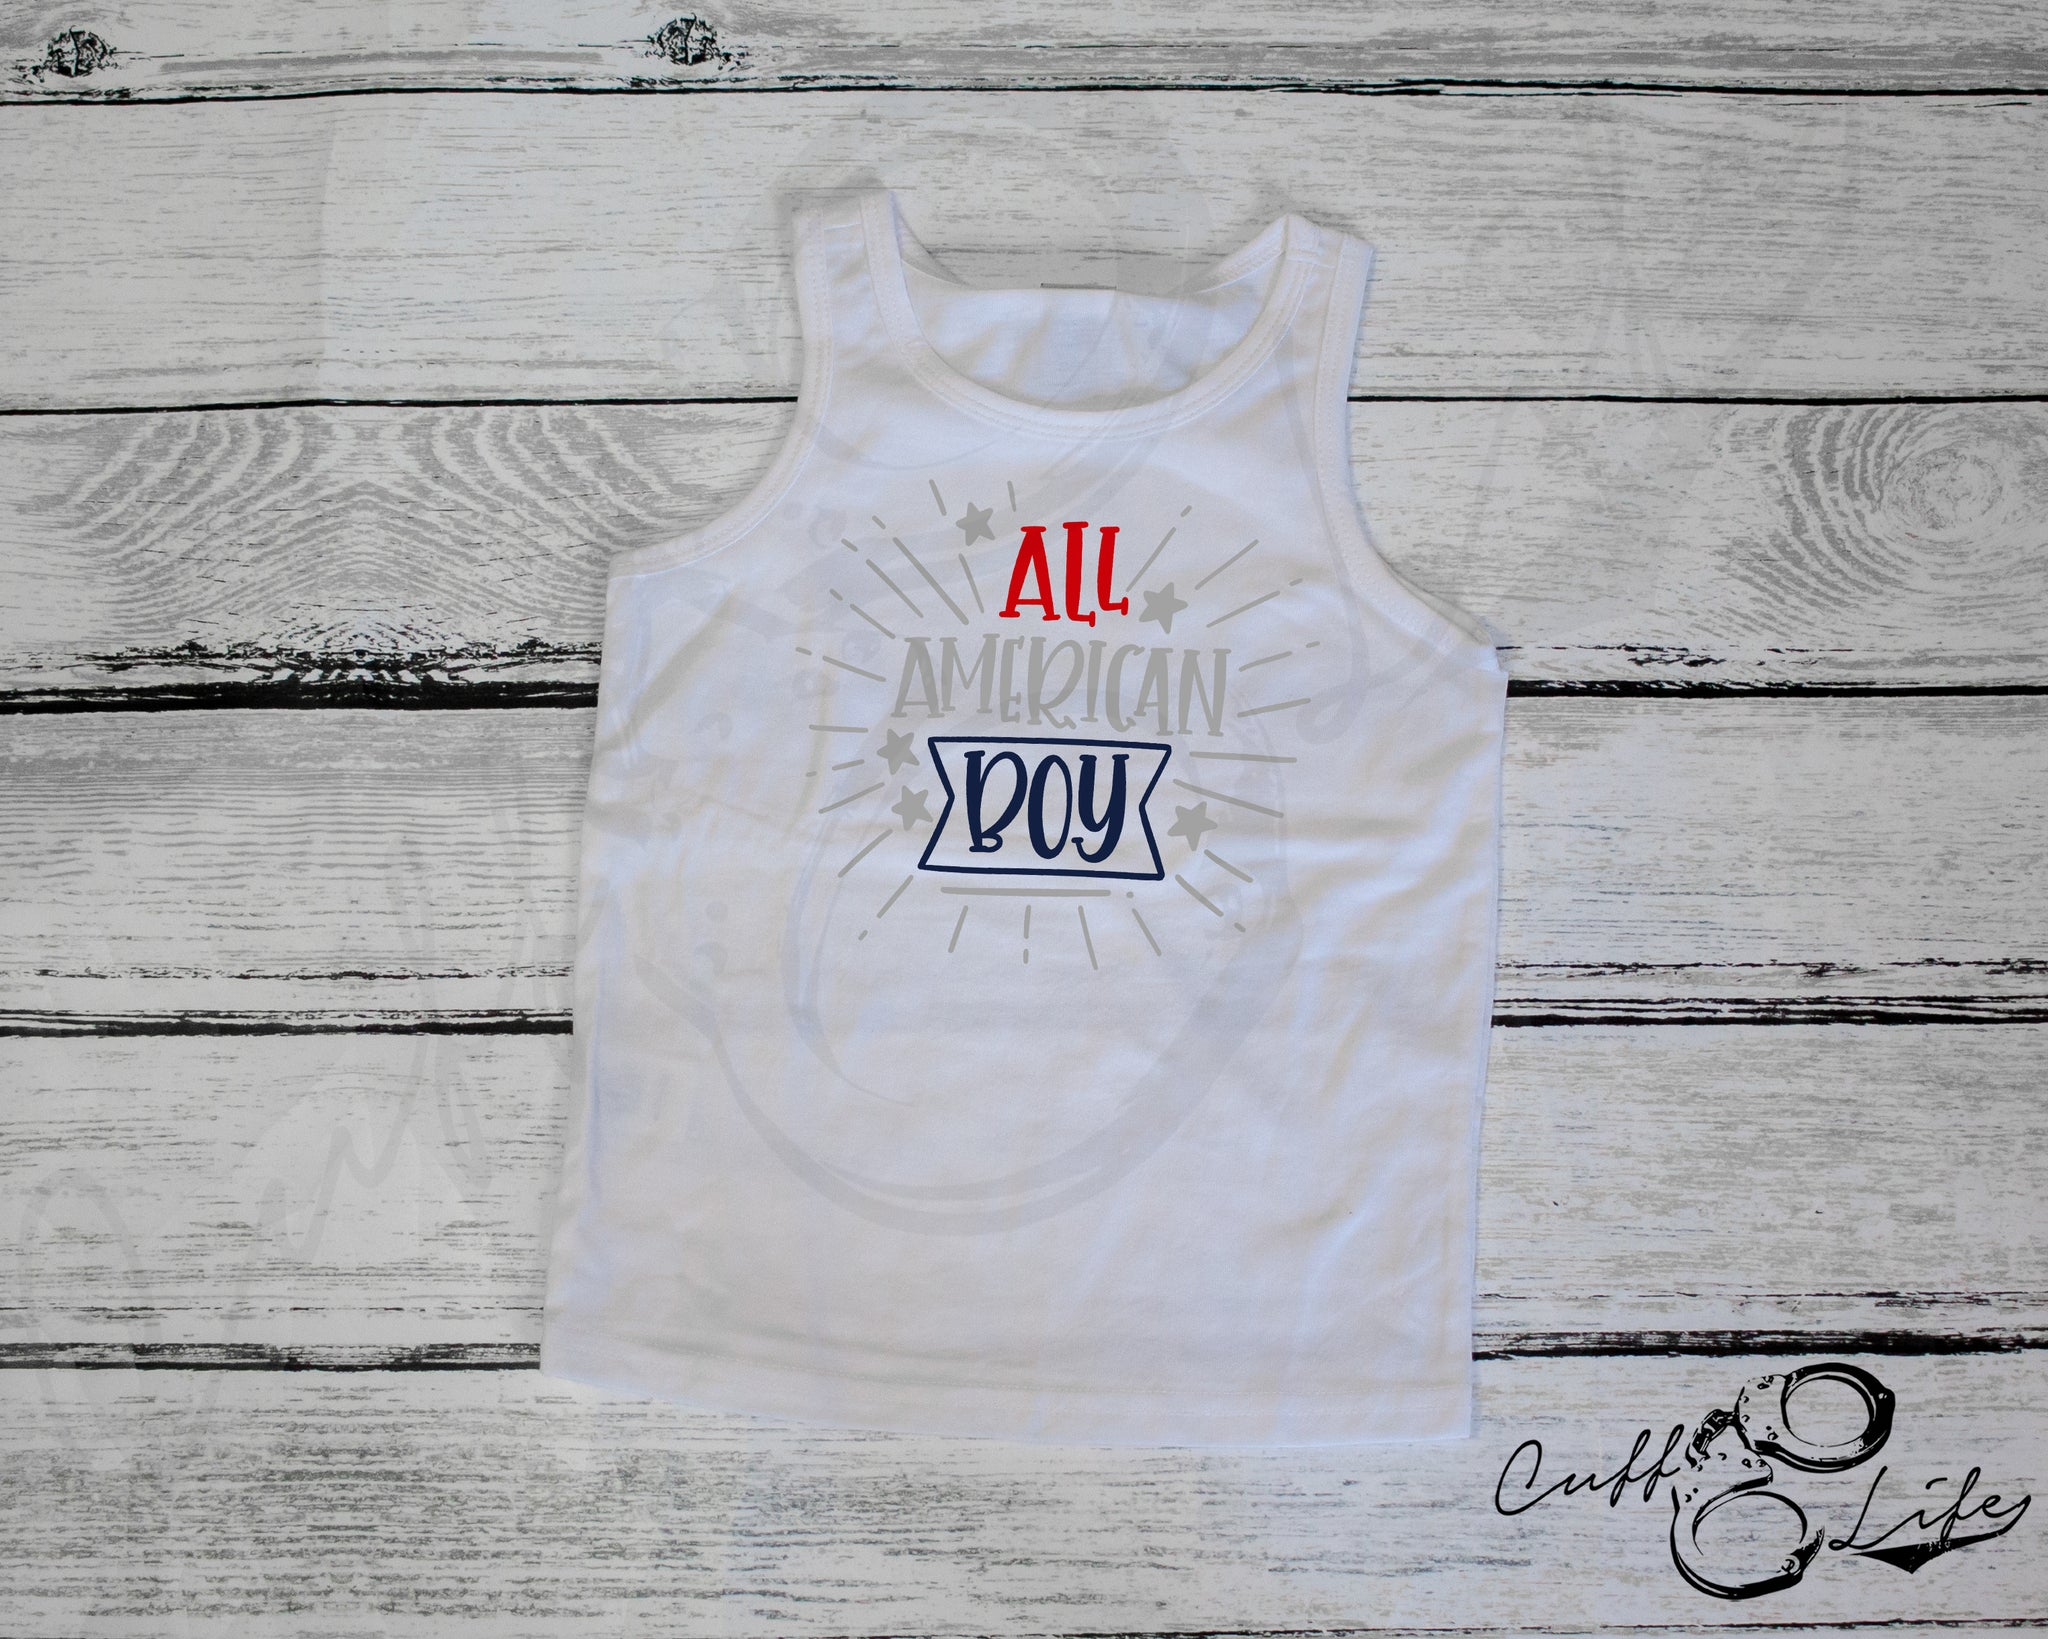 All American Boy - Toddler/Youth Tank